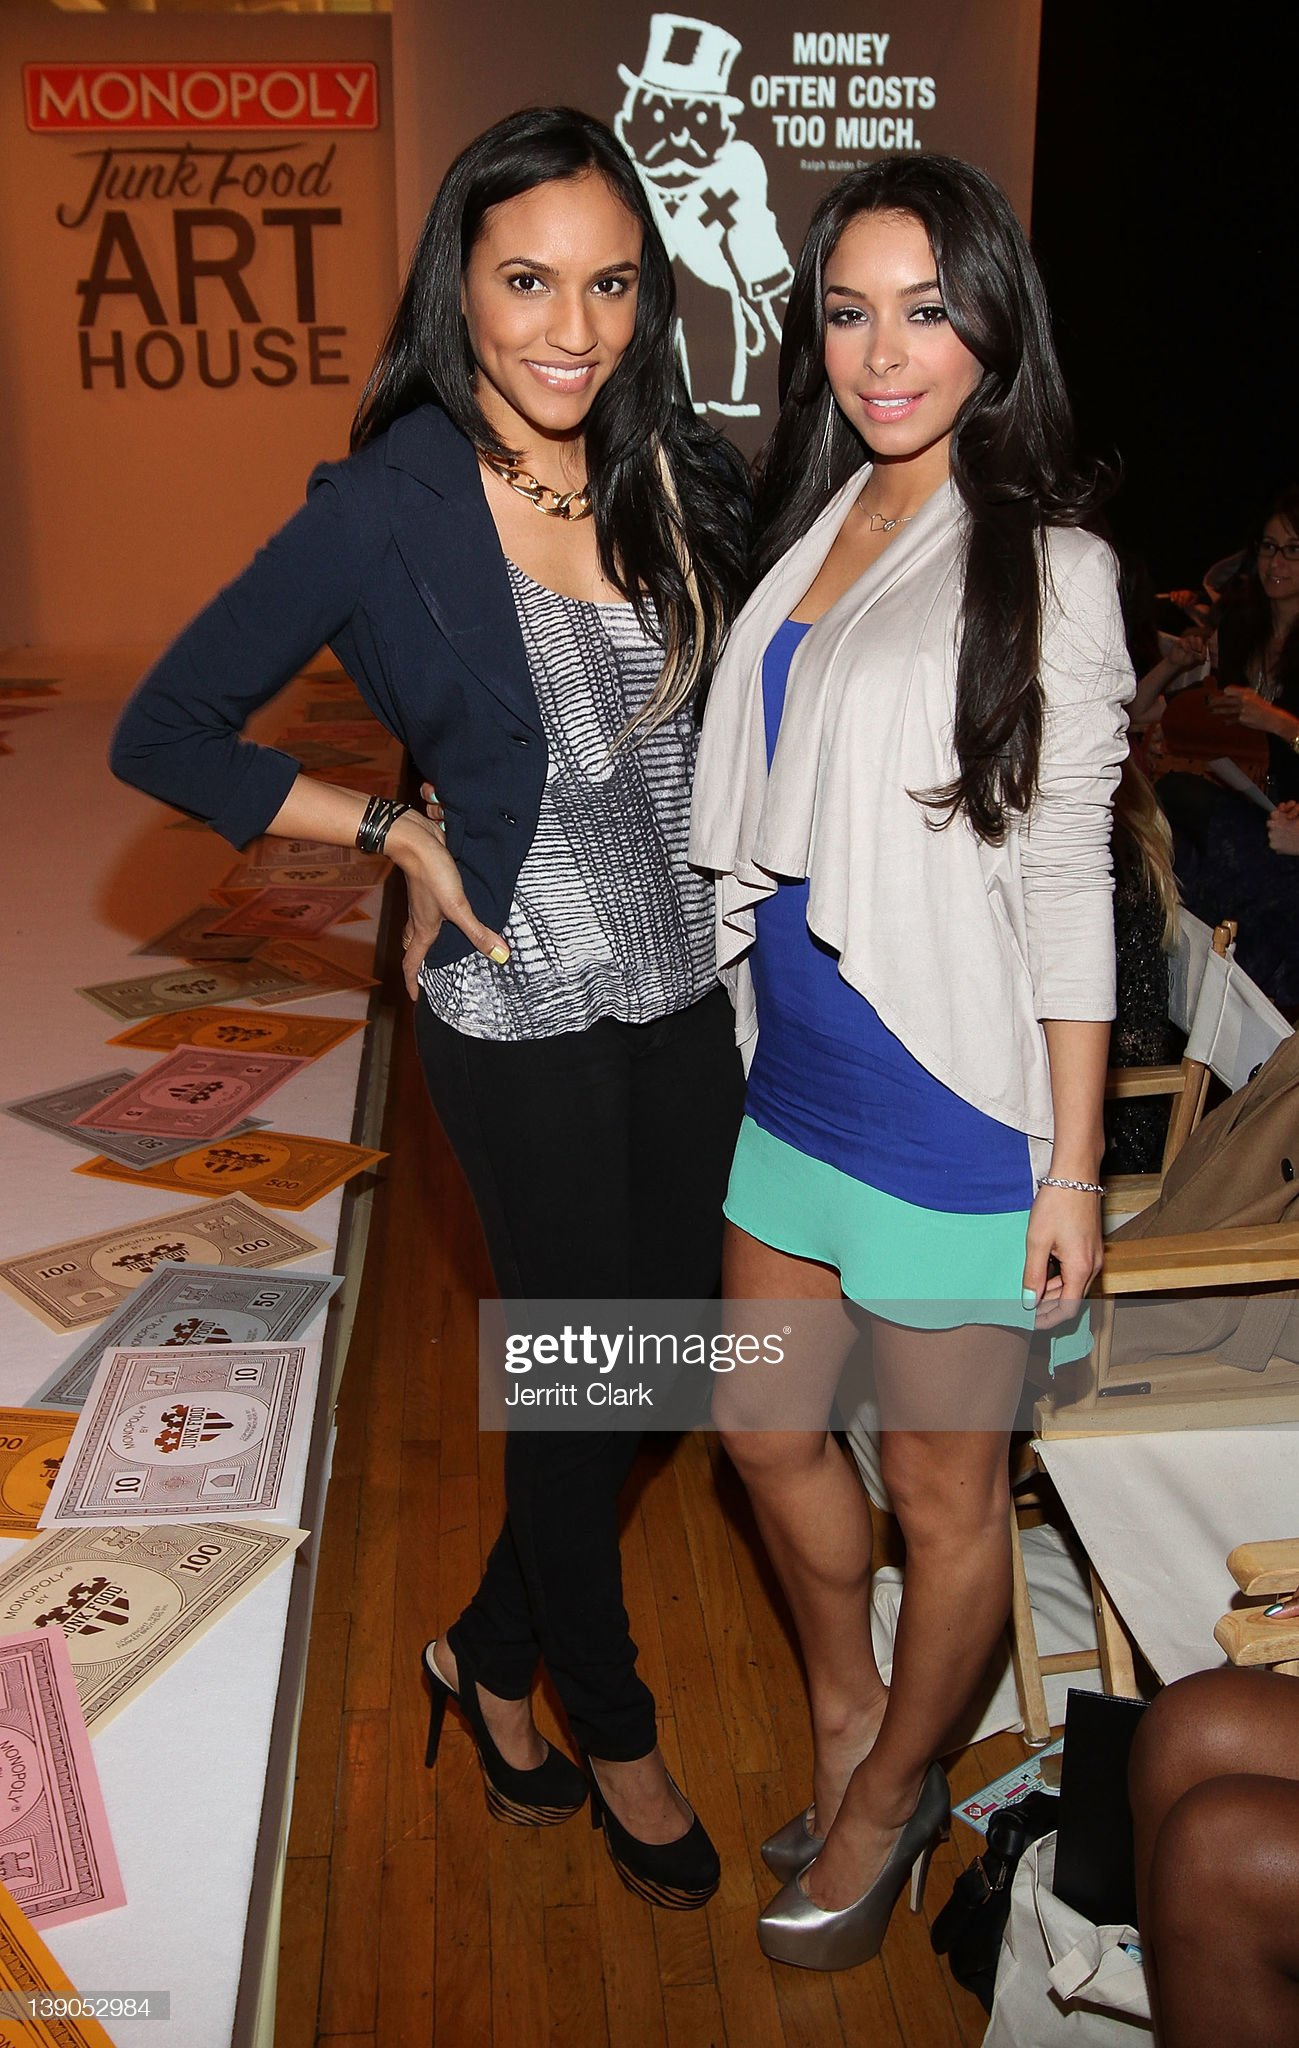 ¿Cuánto mide Jessica Caban? - Real height Eunice-quinones-and-jessica-caban-attend-the-monopoly-by-junk-food-picture-id139052984?s=2048x2048